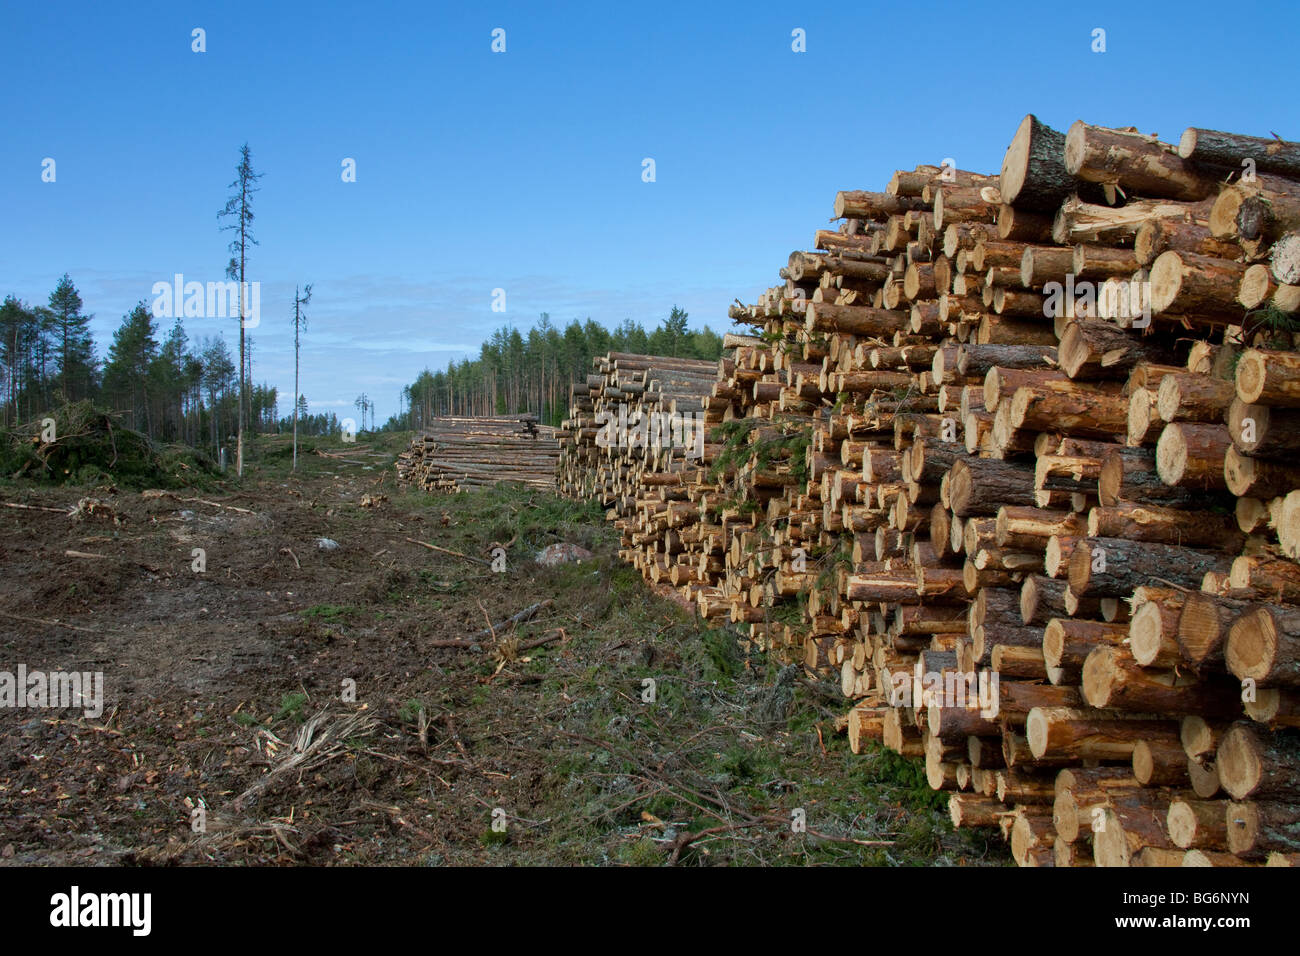 Logging industry showing pile of cut logs trees timber Pine tree timber